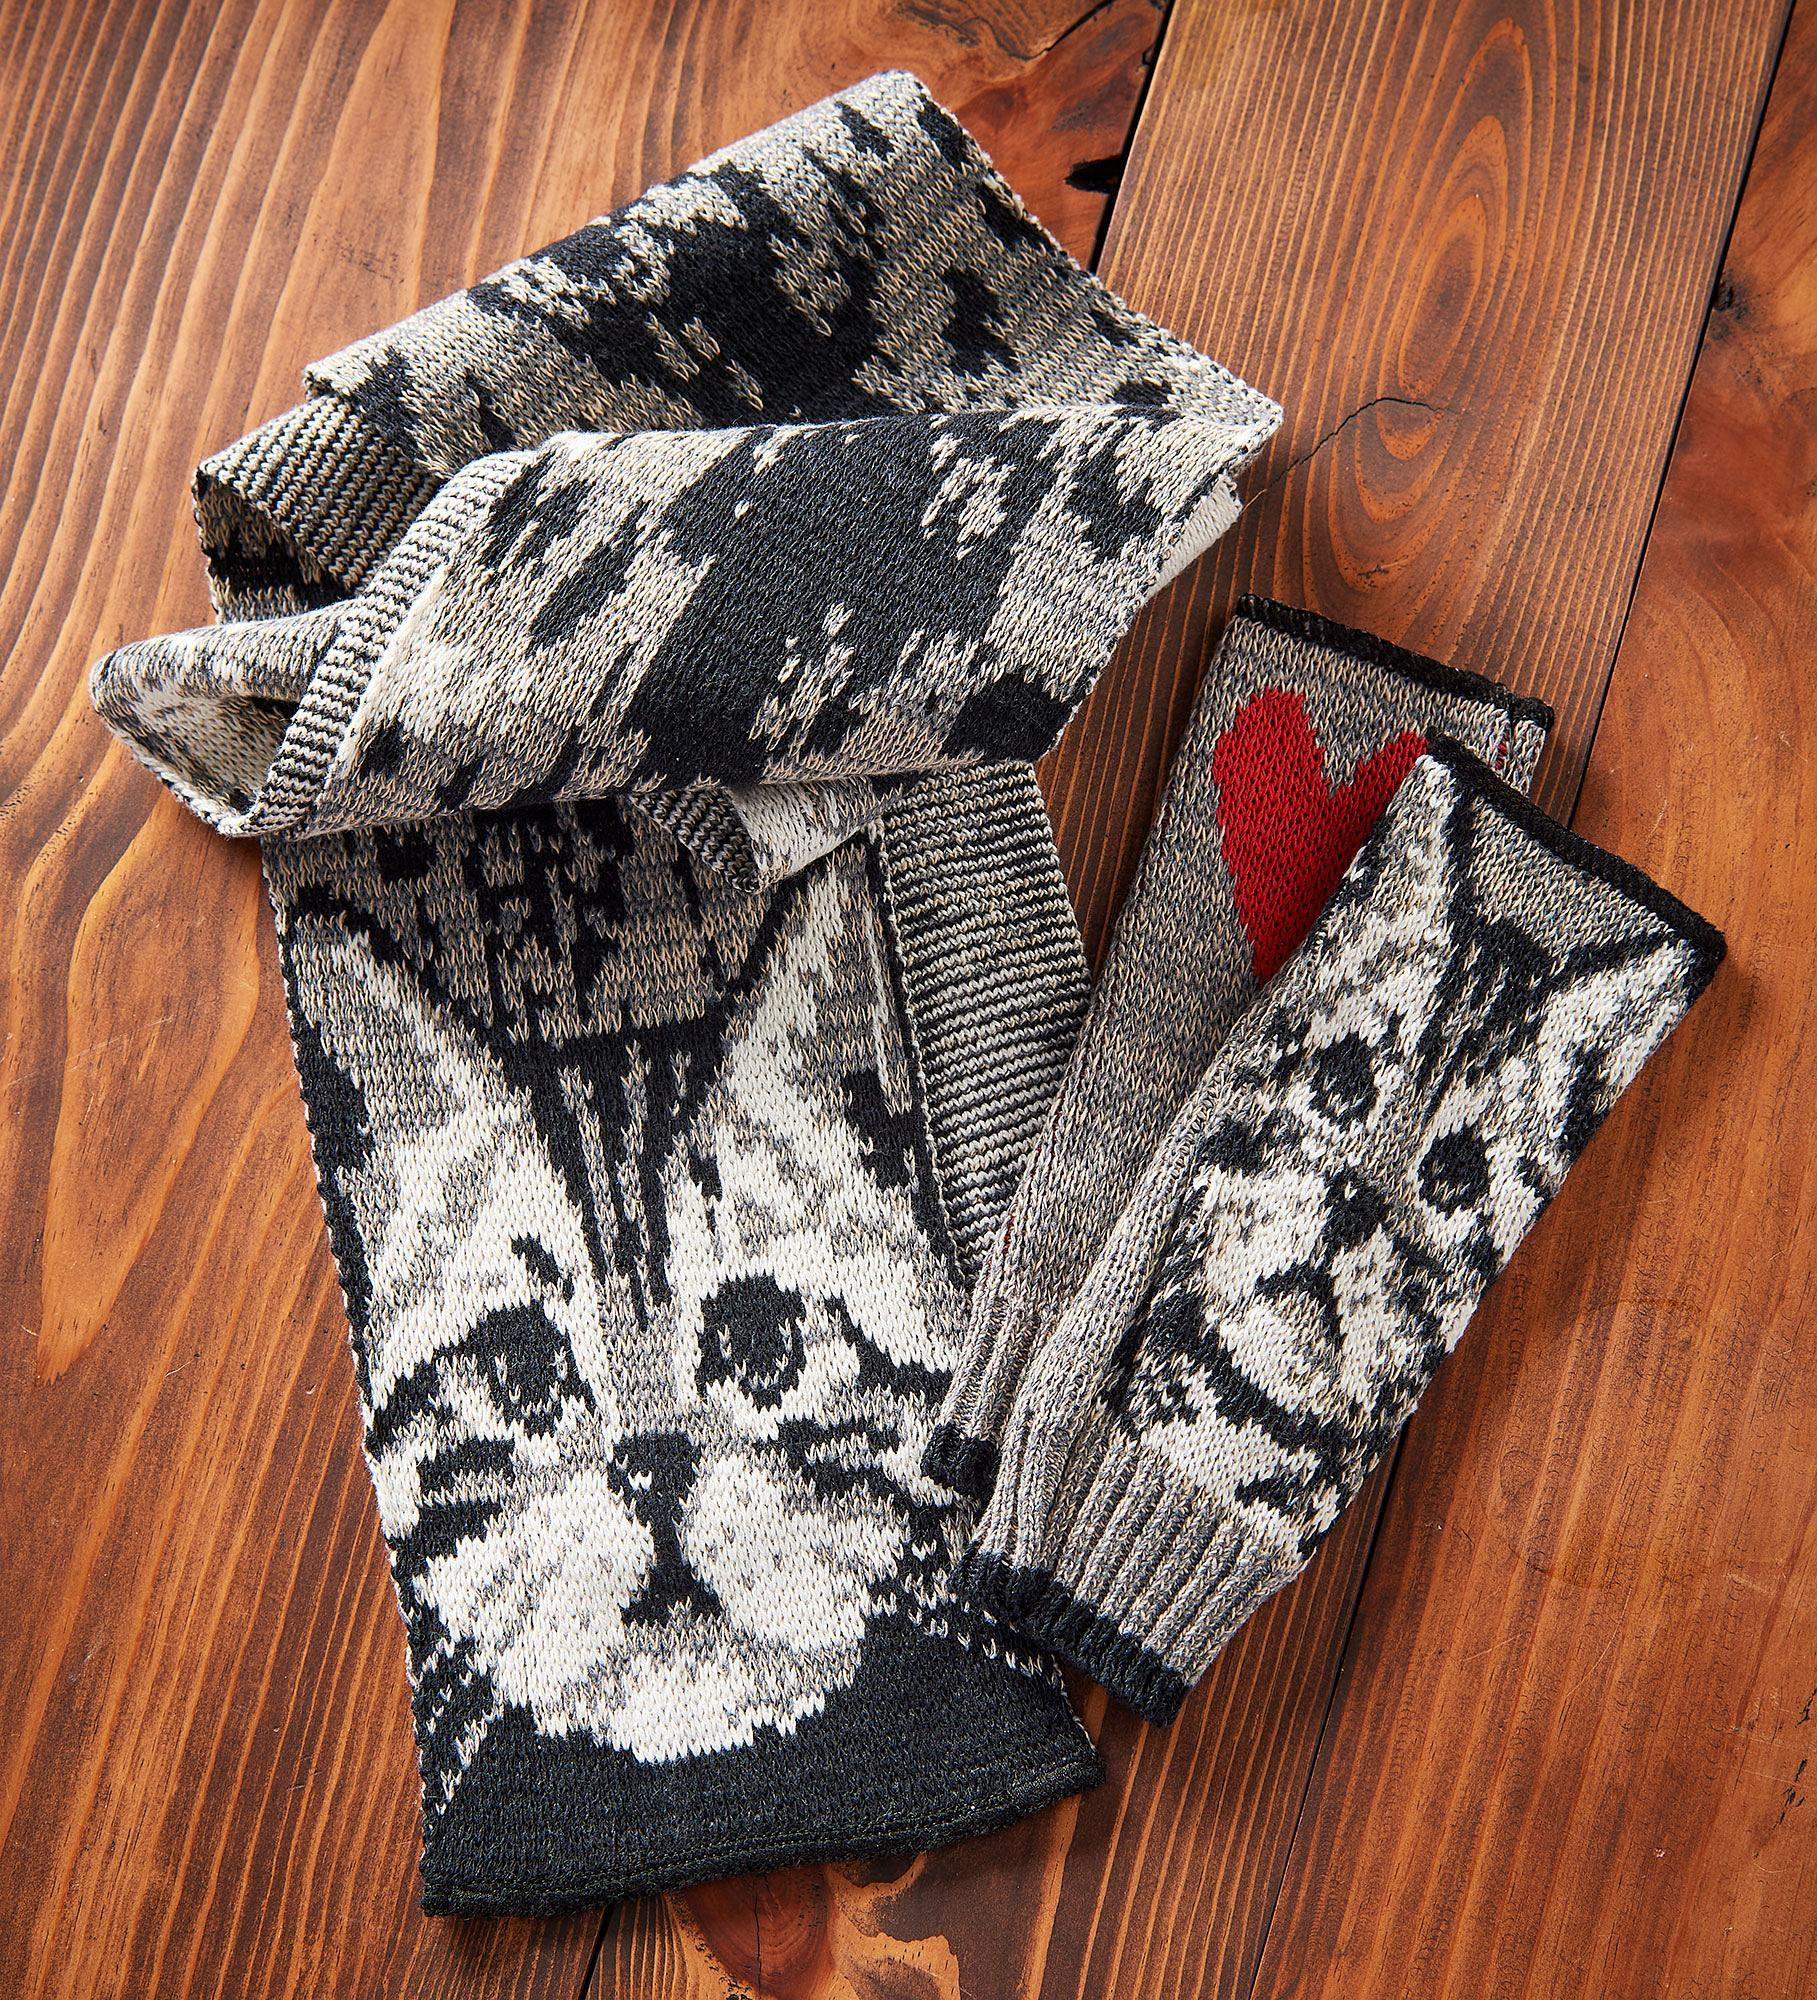 Kitty Scarf & Handwarmers